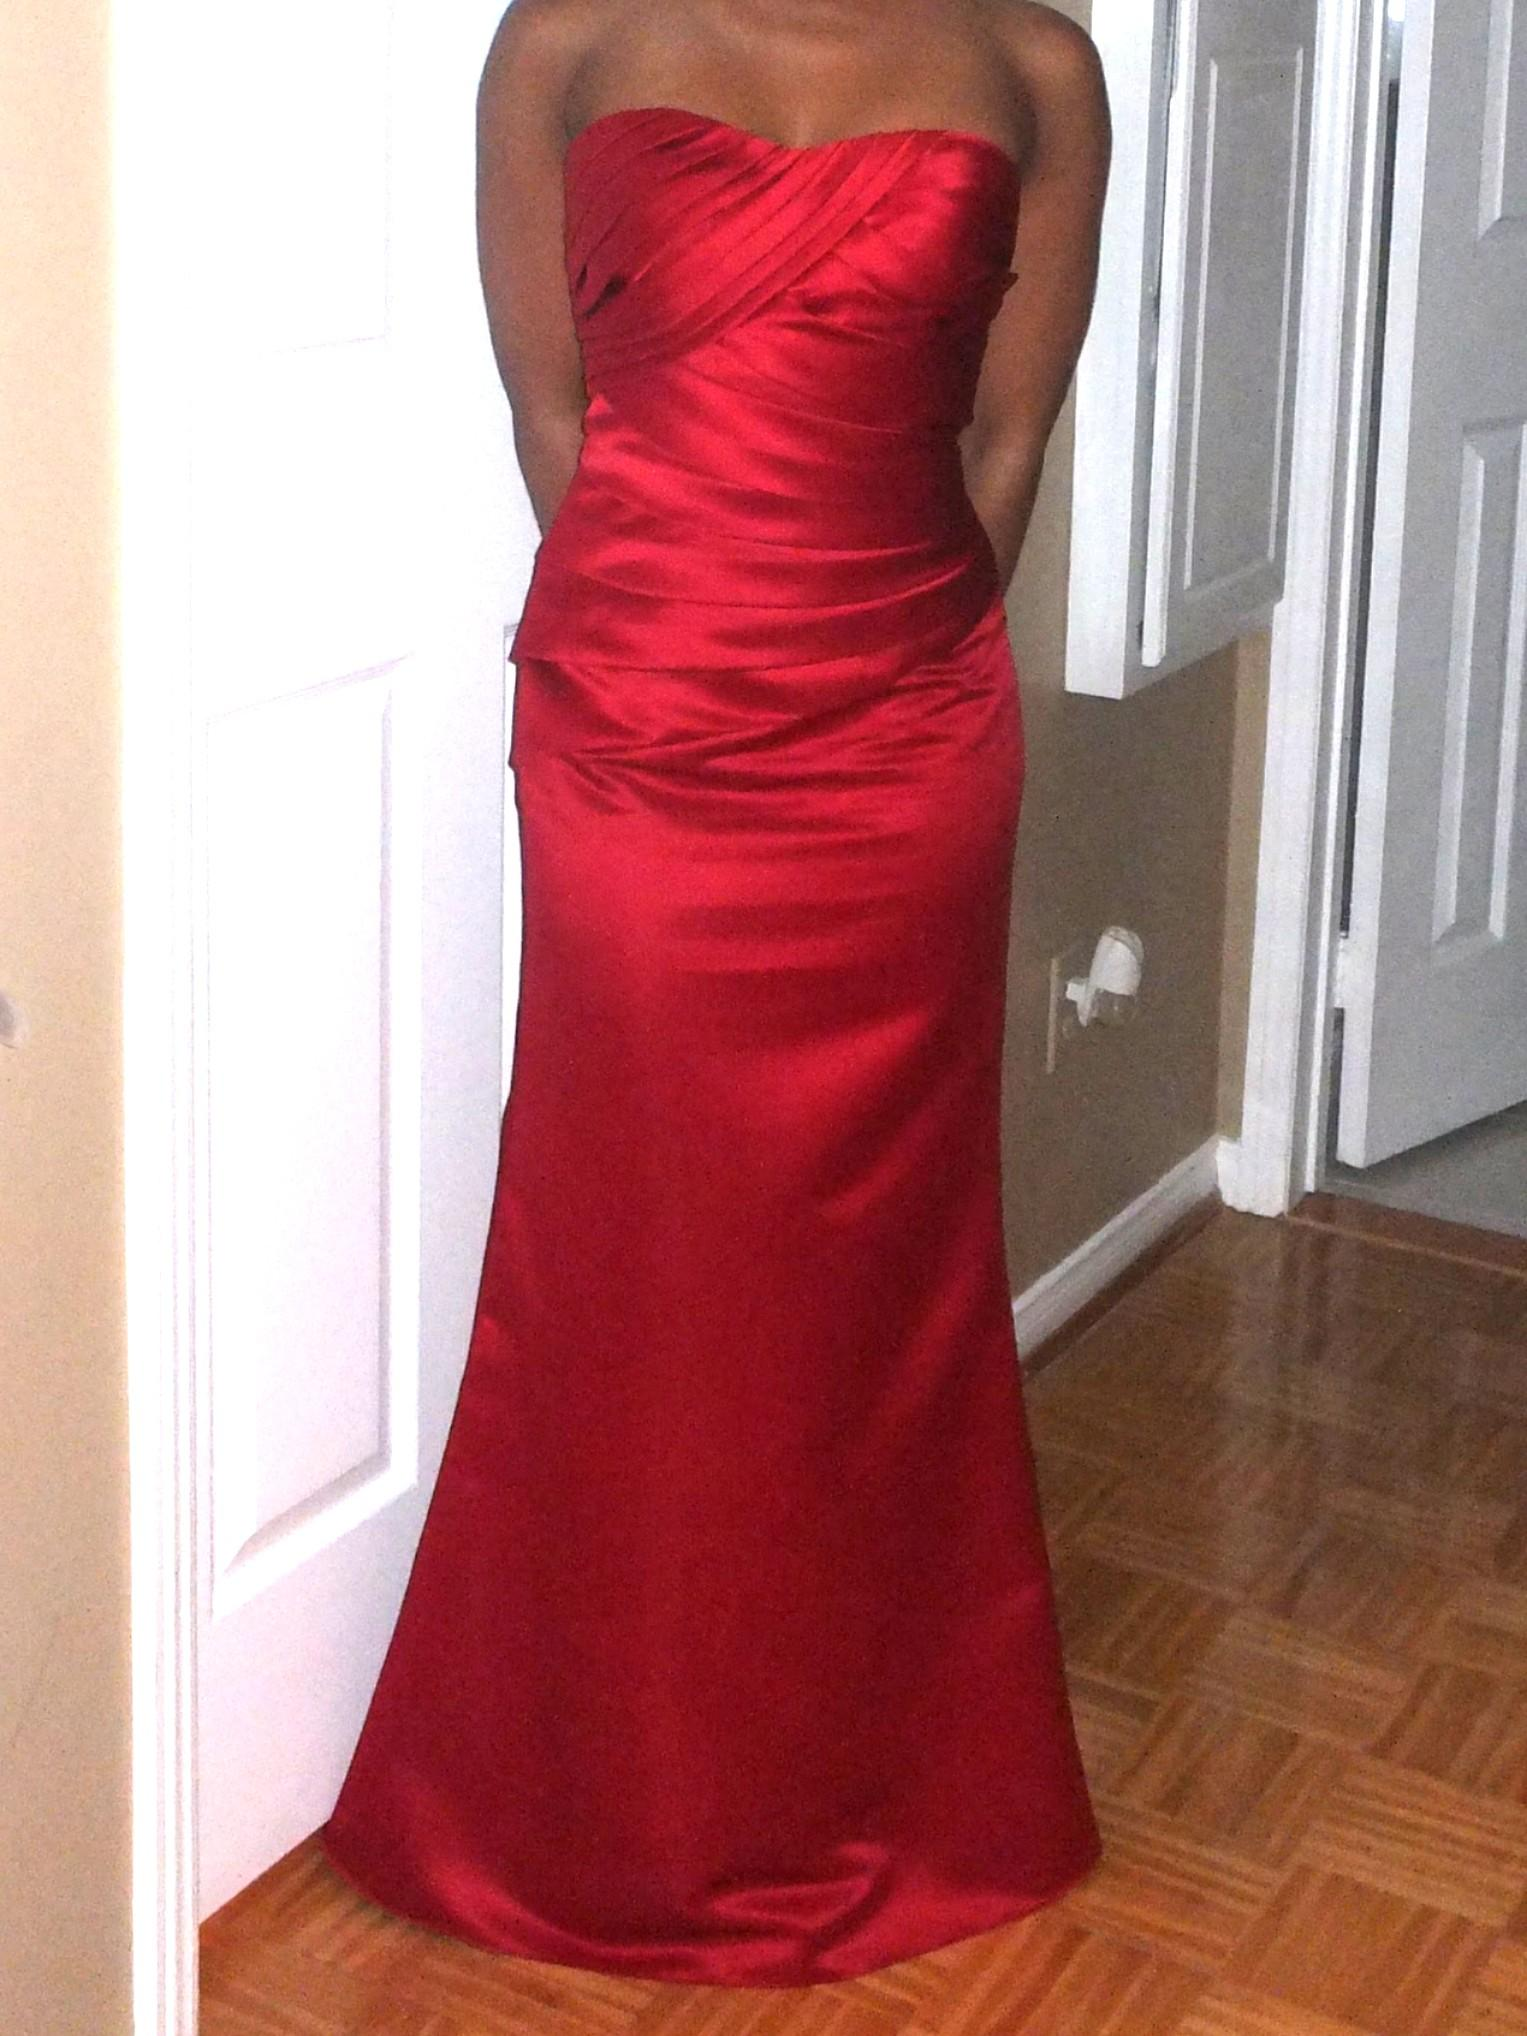 Formal Red Mermaid Dress For Gala, Prom, Wedding, Graduation Etc